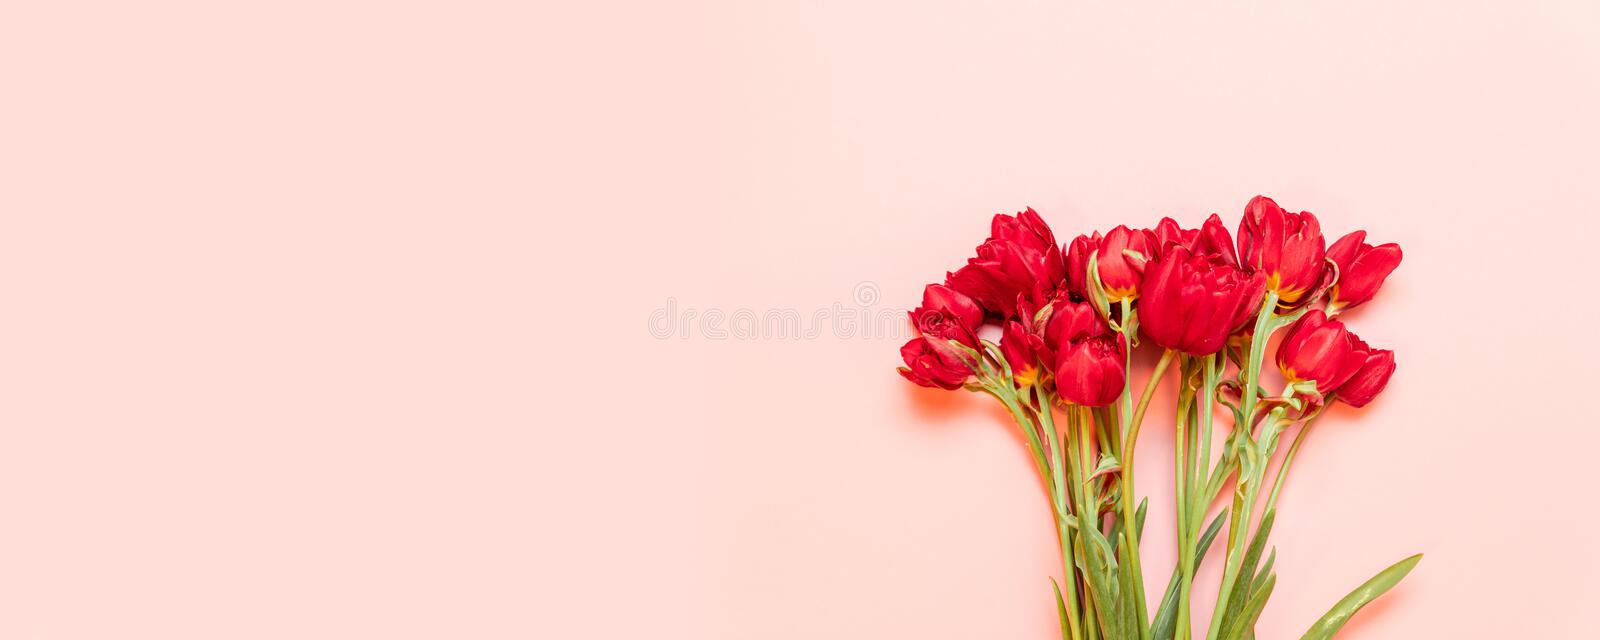 Happy Mothers day. Beautiful red tulips on pink background flat lay royalty free stock photography